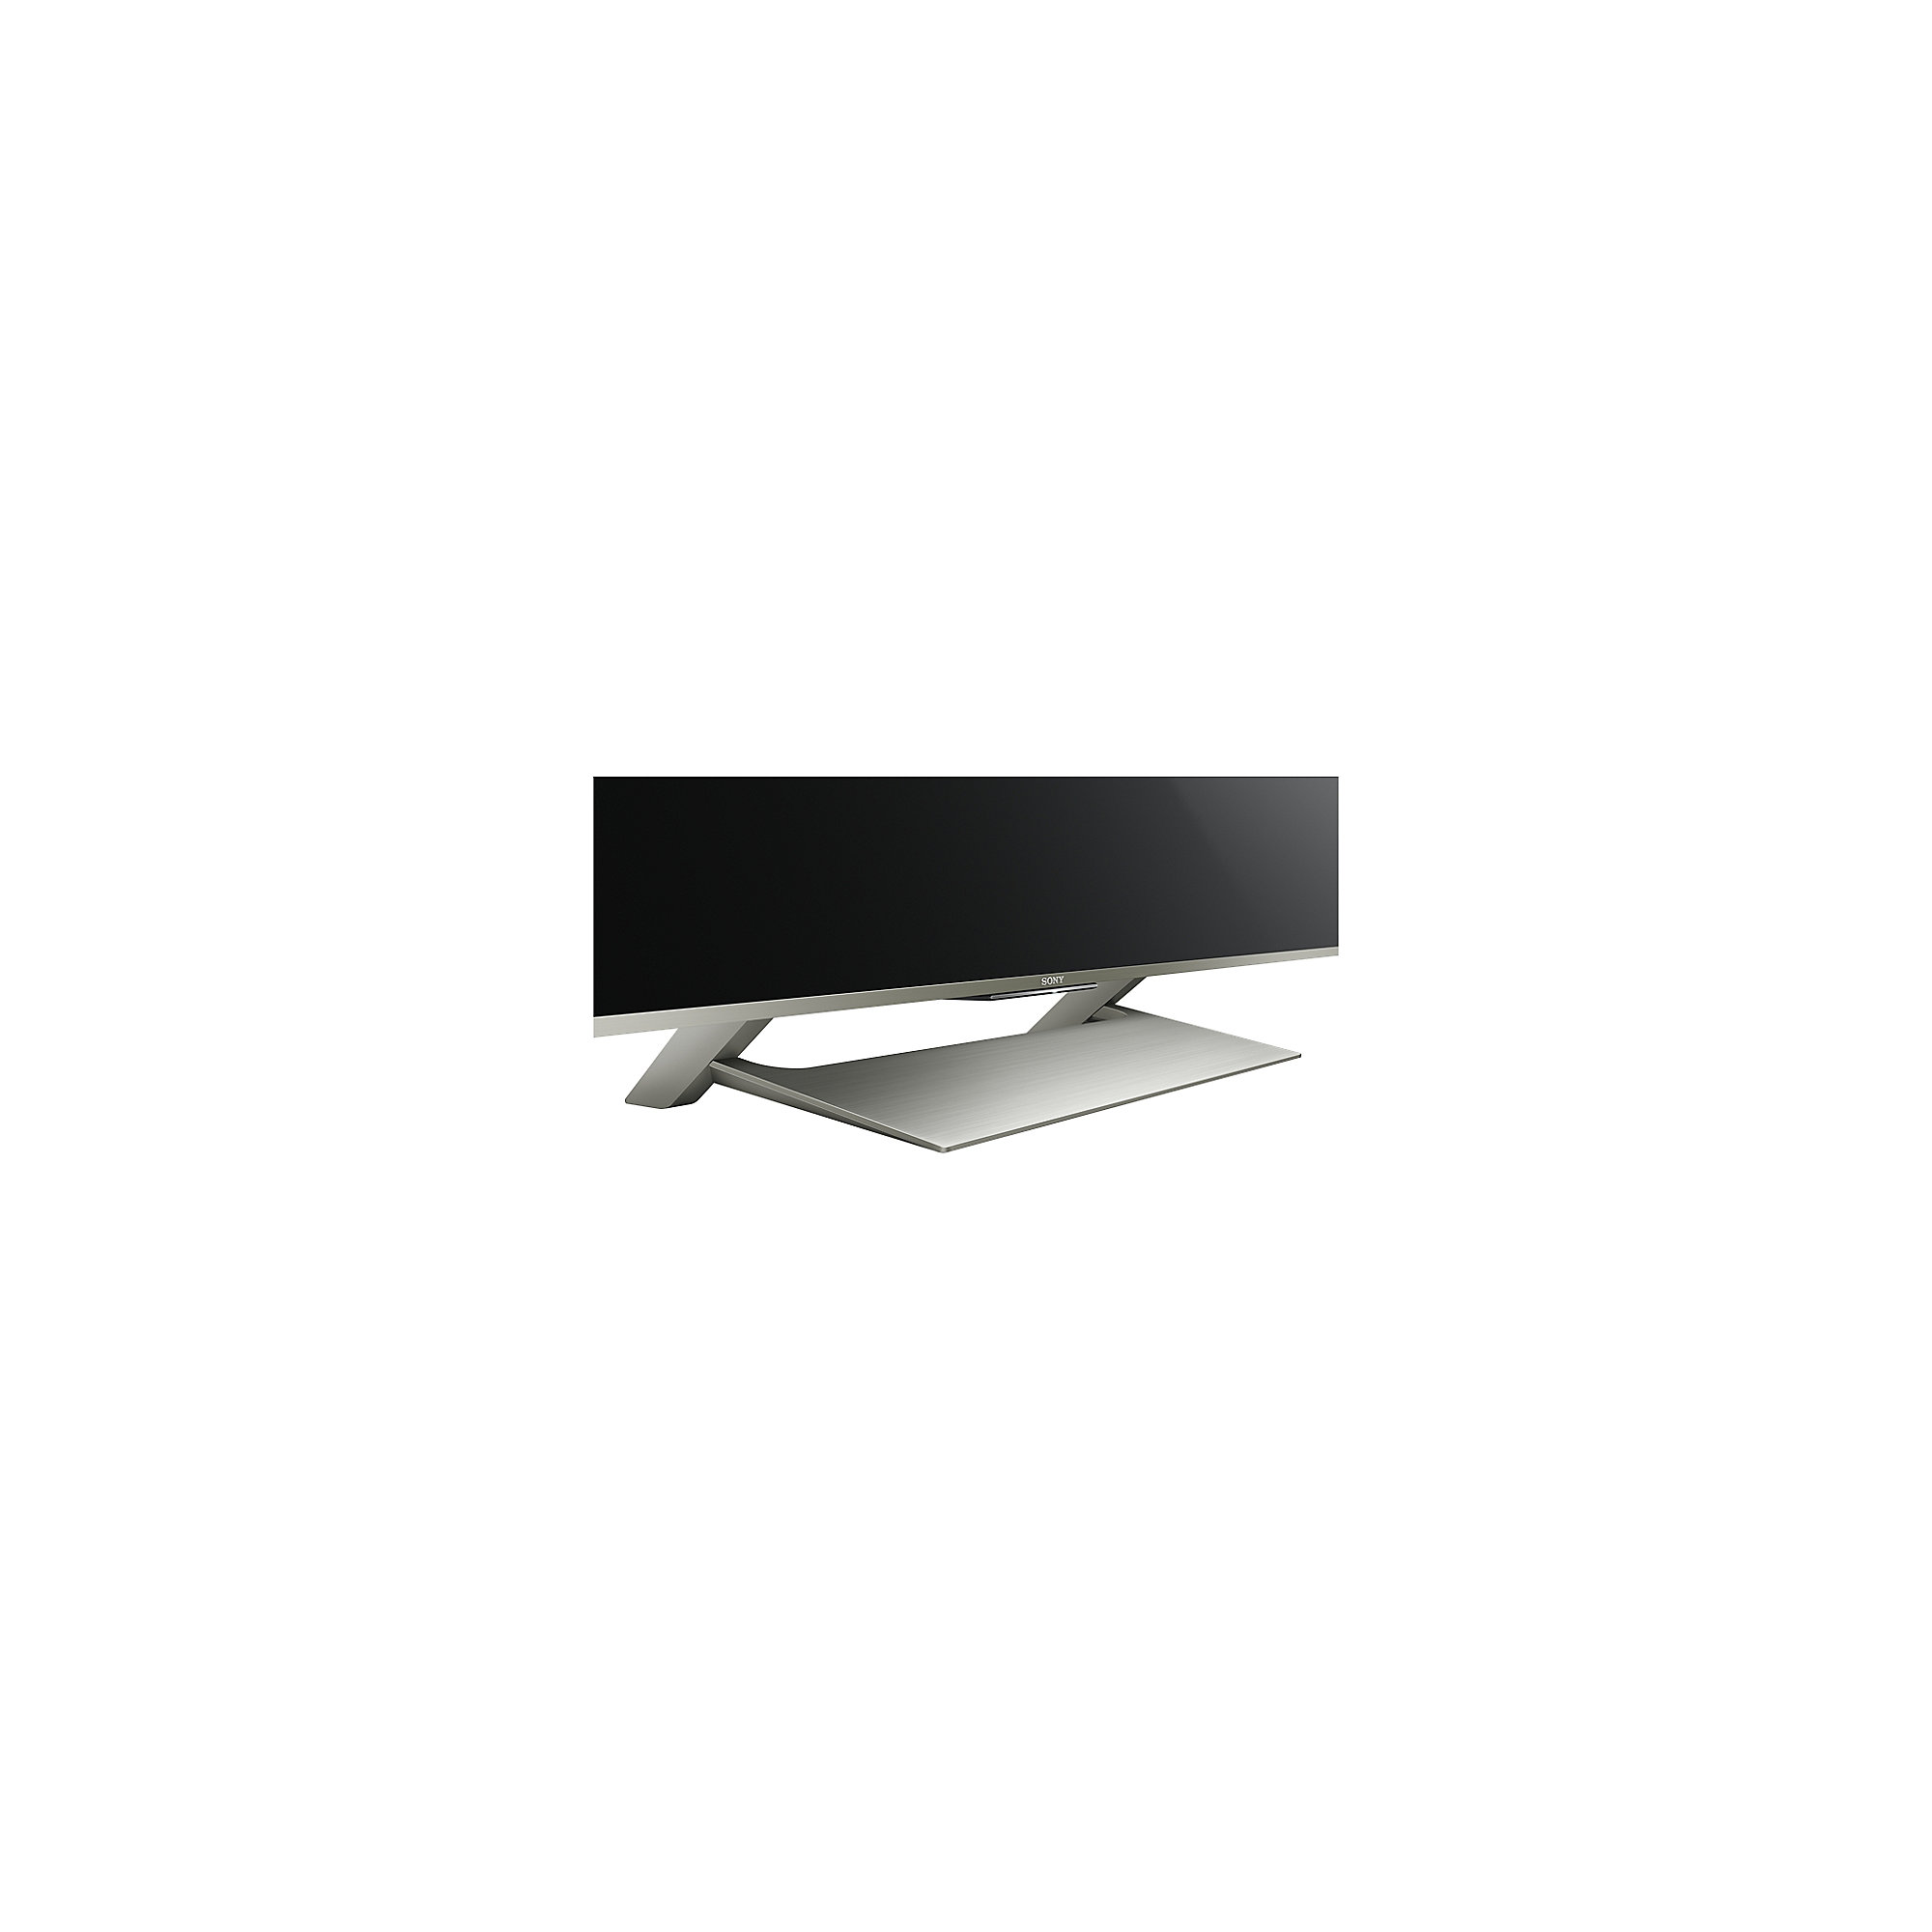 "SONY Bravia KD75XE9005 189cm 75"" 4K UHD HDR 2xDVB-T2HD/C/S2 1000Hz Android TV"